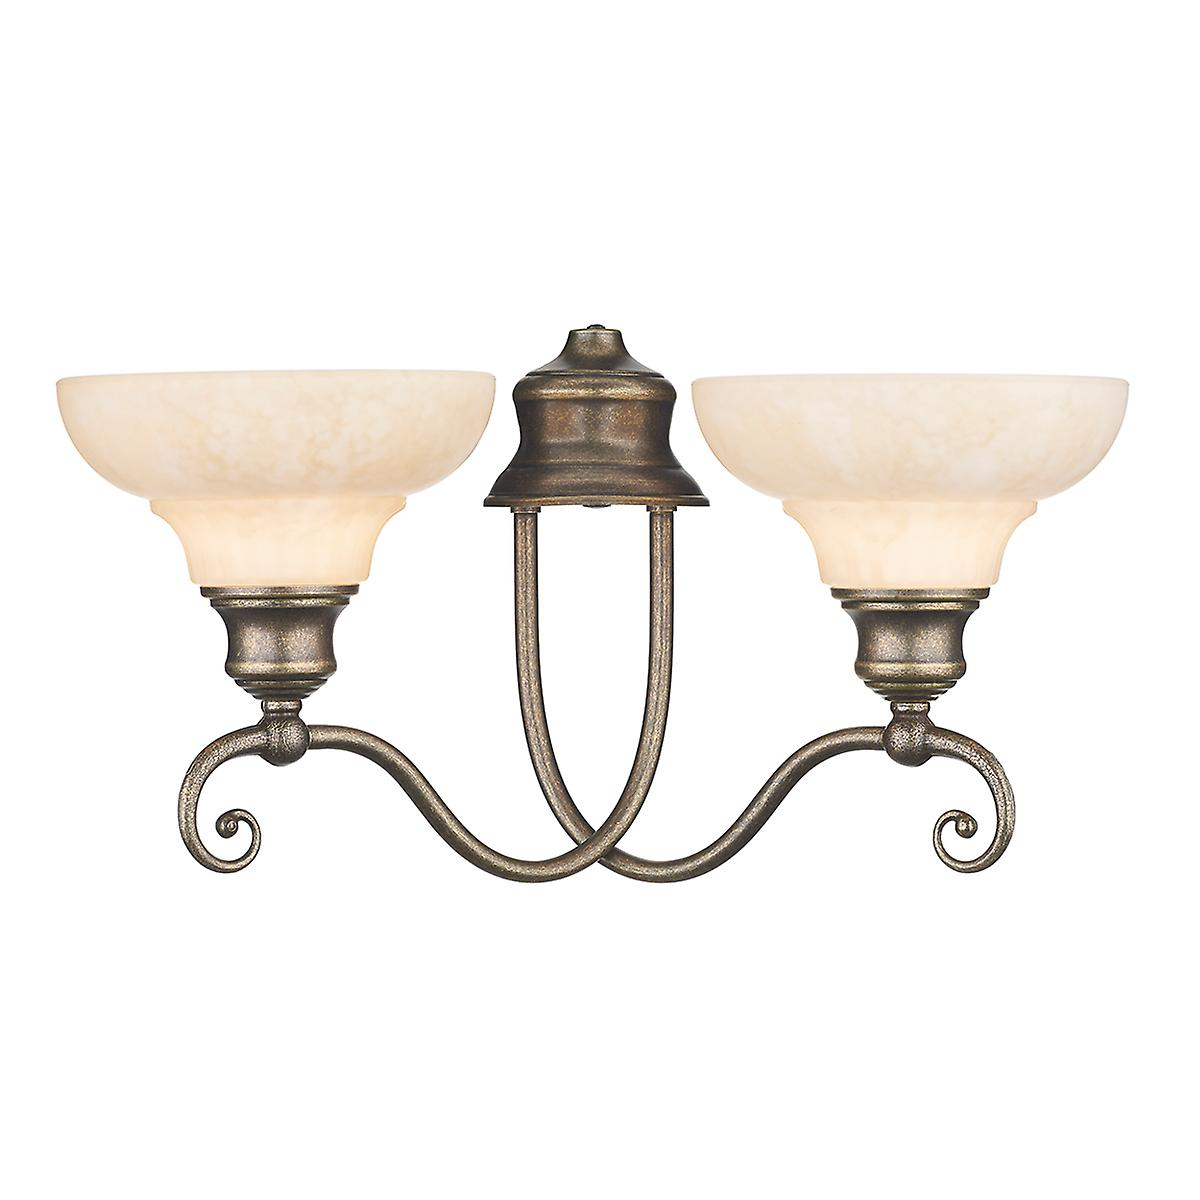 David Hunt ST211 Stratford Double Wall Bracket In An Aged Brass Finish With Glass